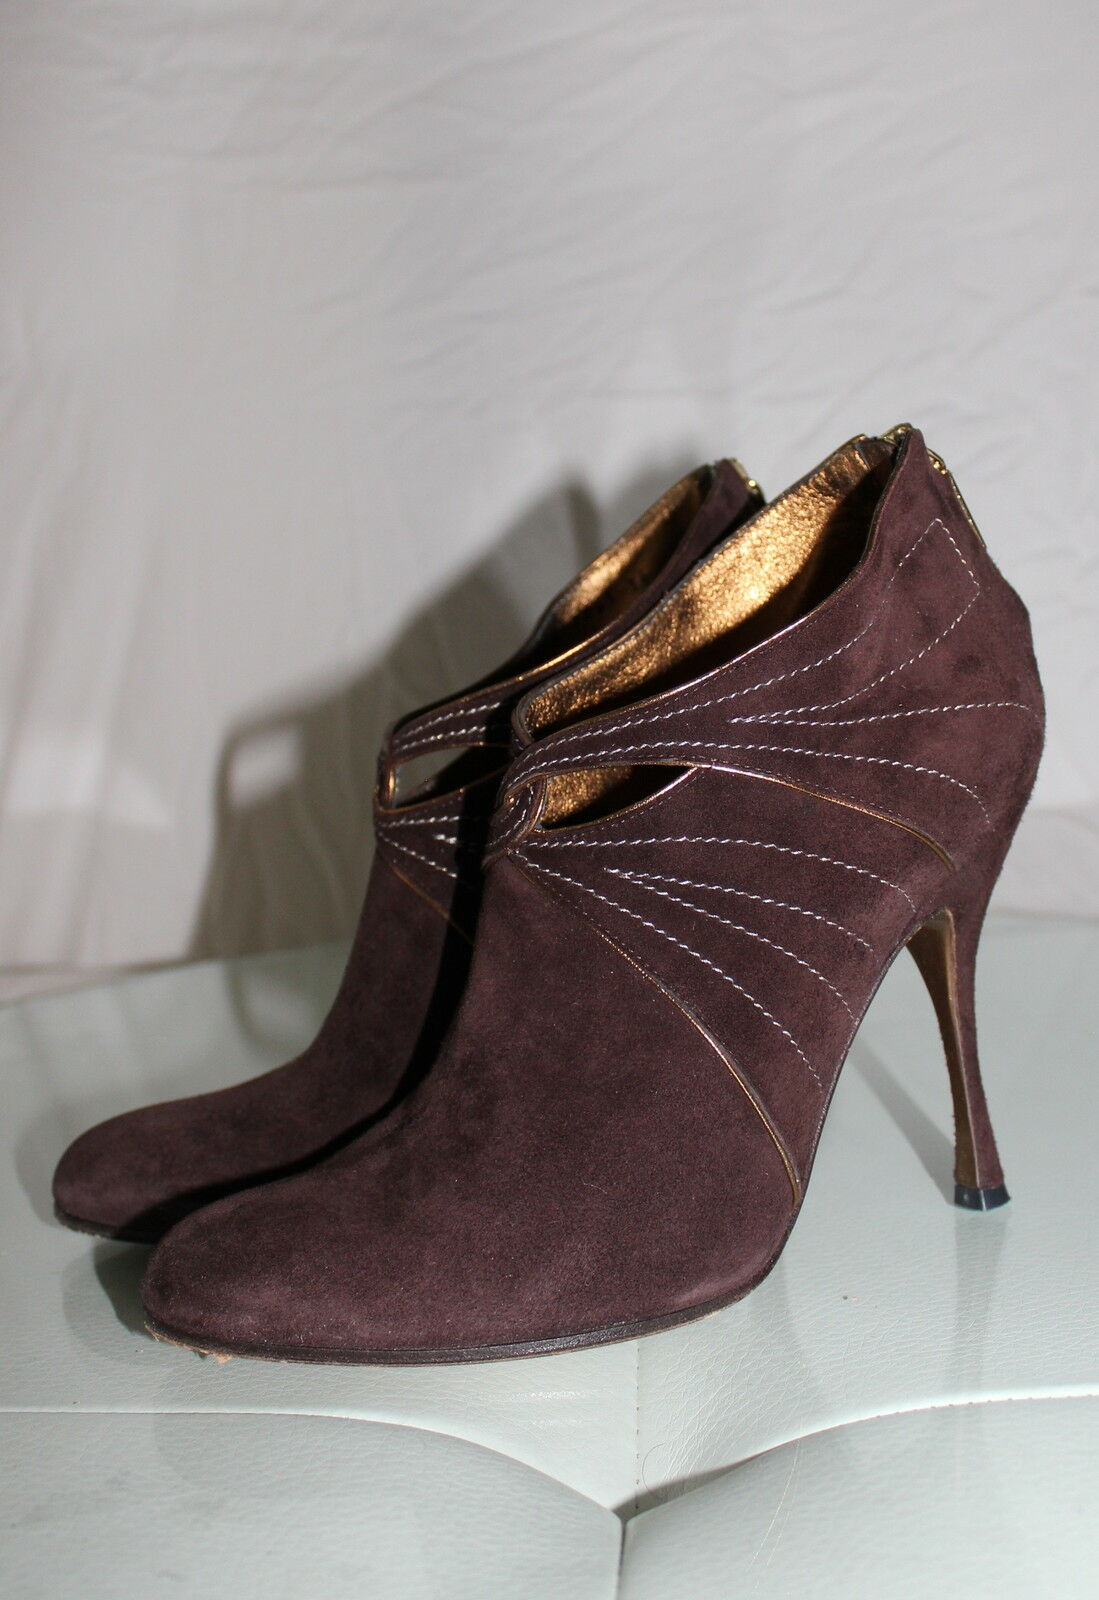 895 DOLCE AND GABBANA BROWN SUEDE LEATHER HEELS ANKLE BOOTIE 36